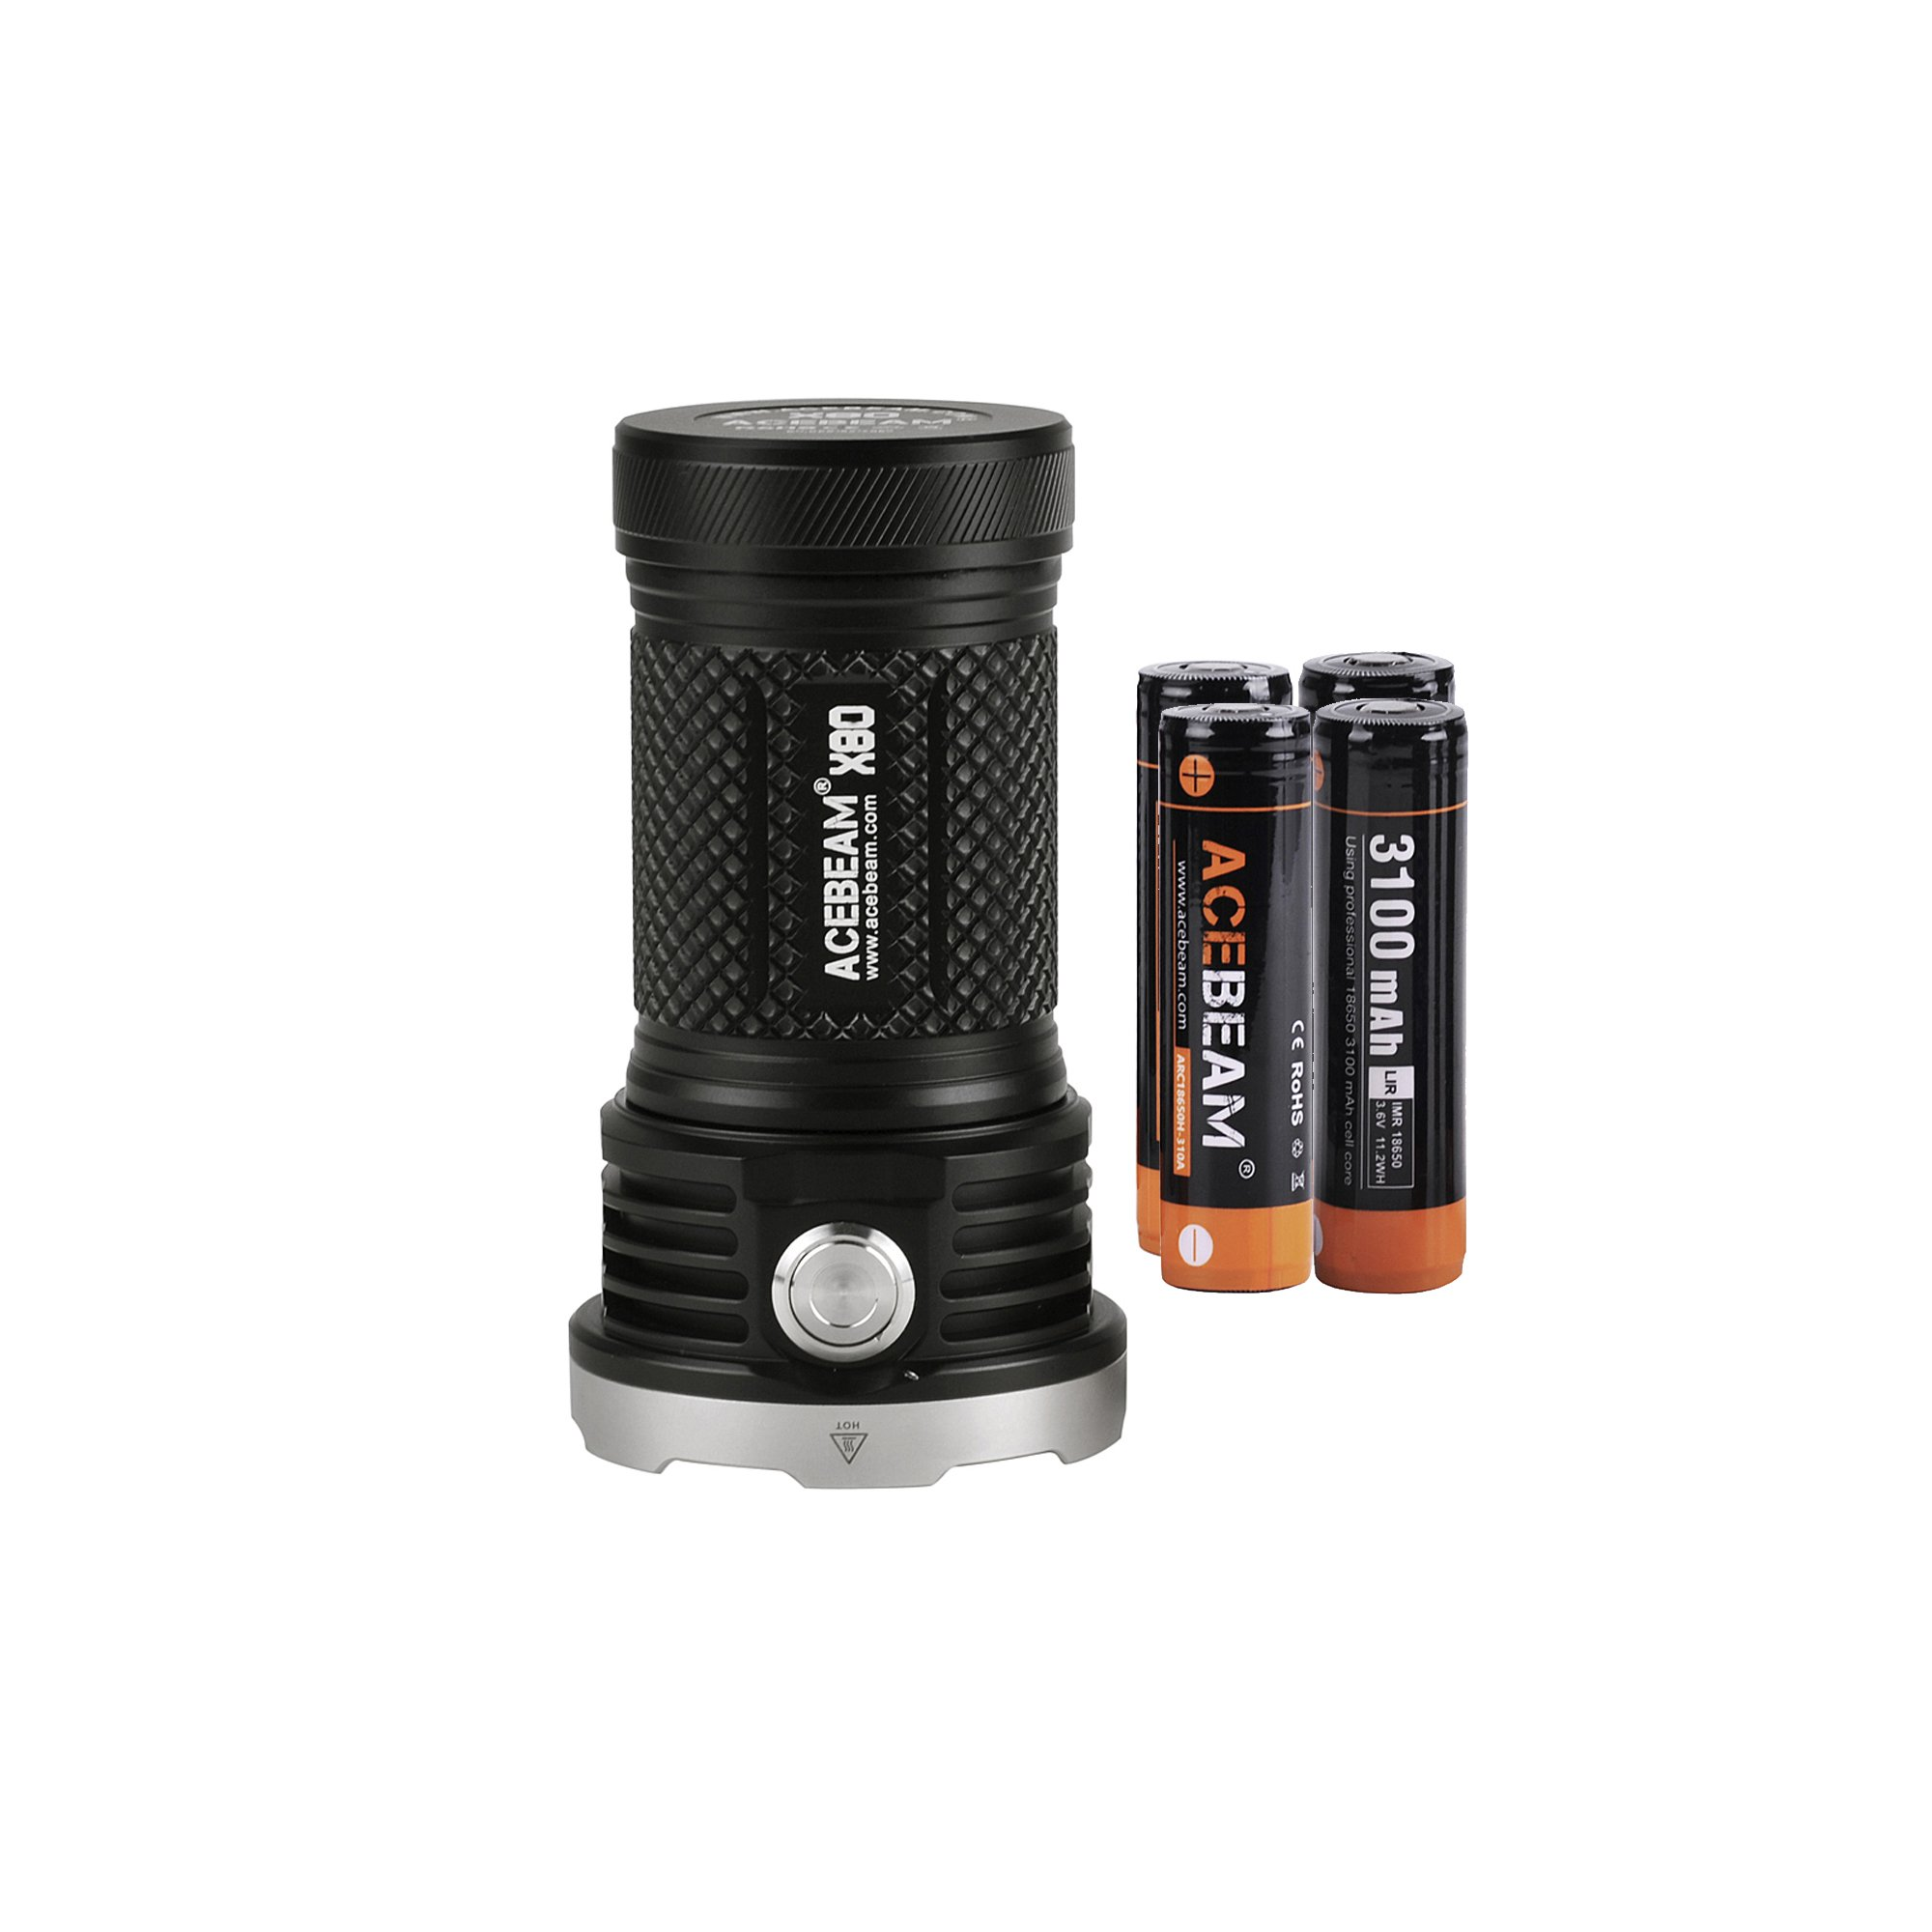 AceBeam X80 Flashlight 25000 Lumens 5-color Light Beam Flashlights Included Batteries by ACEBEAM (Image #1)